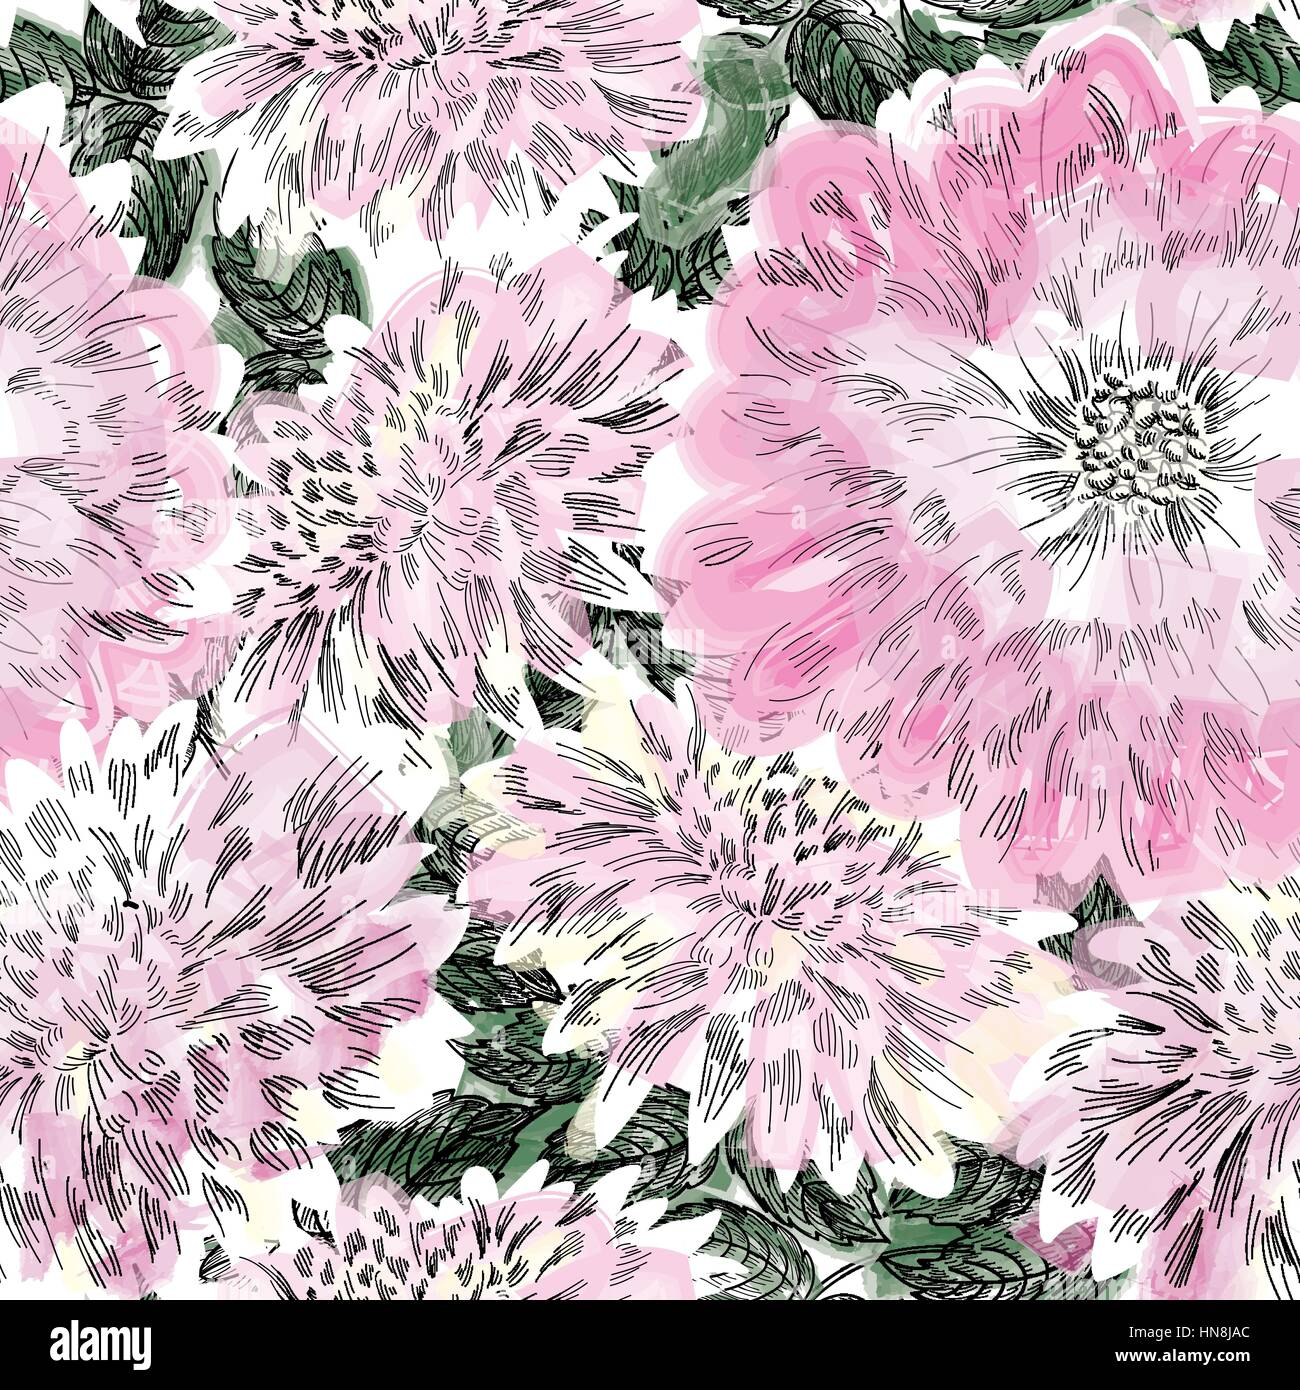 Pink floral seamless vector background floral hrysanthemum seamless - Floral Seamless Pattern Flower Chrysanthemum Background Flourish Seamless Texture With Flowers